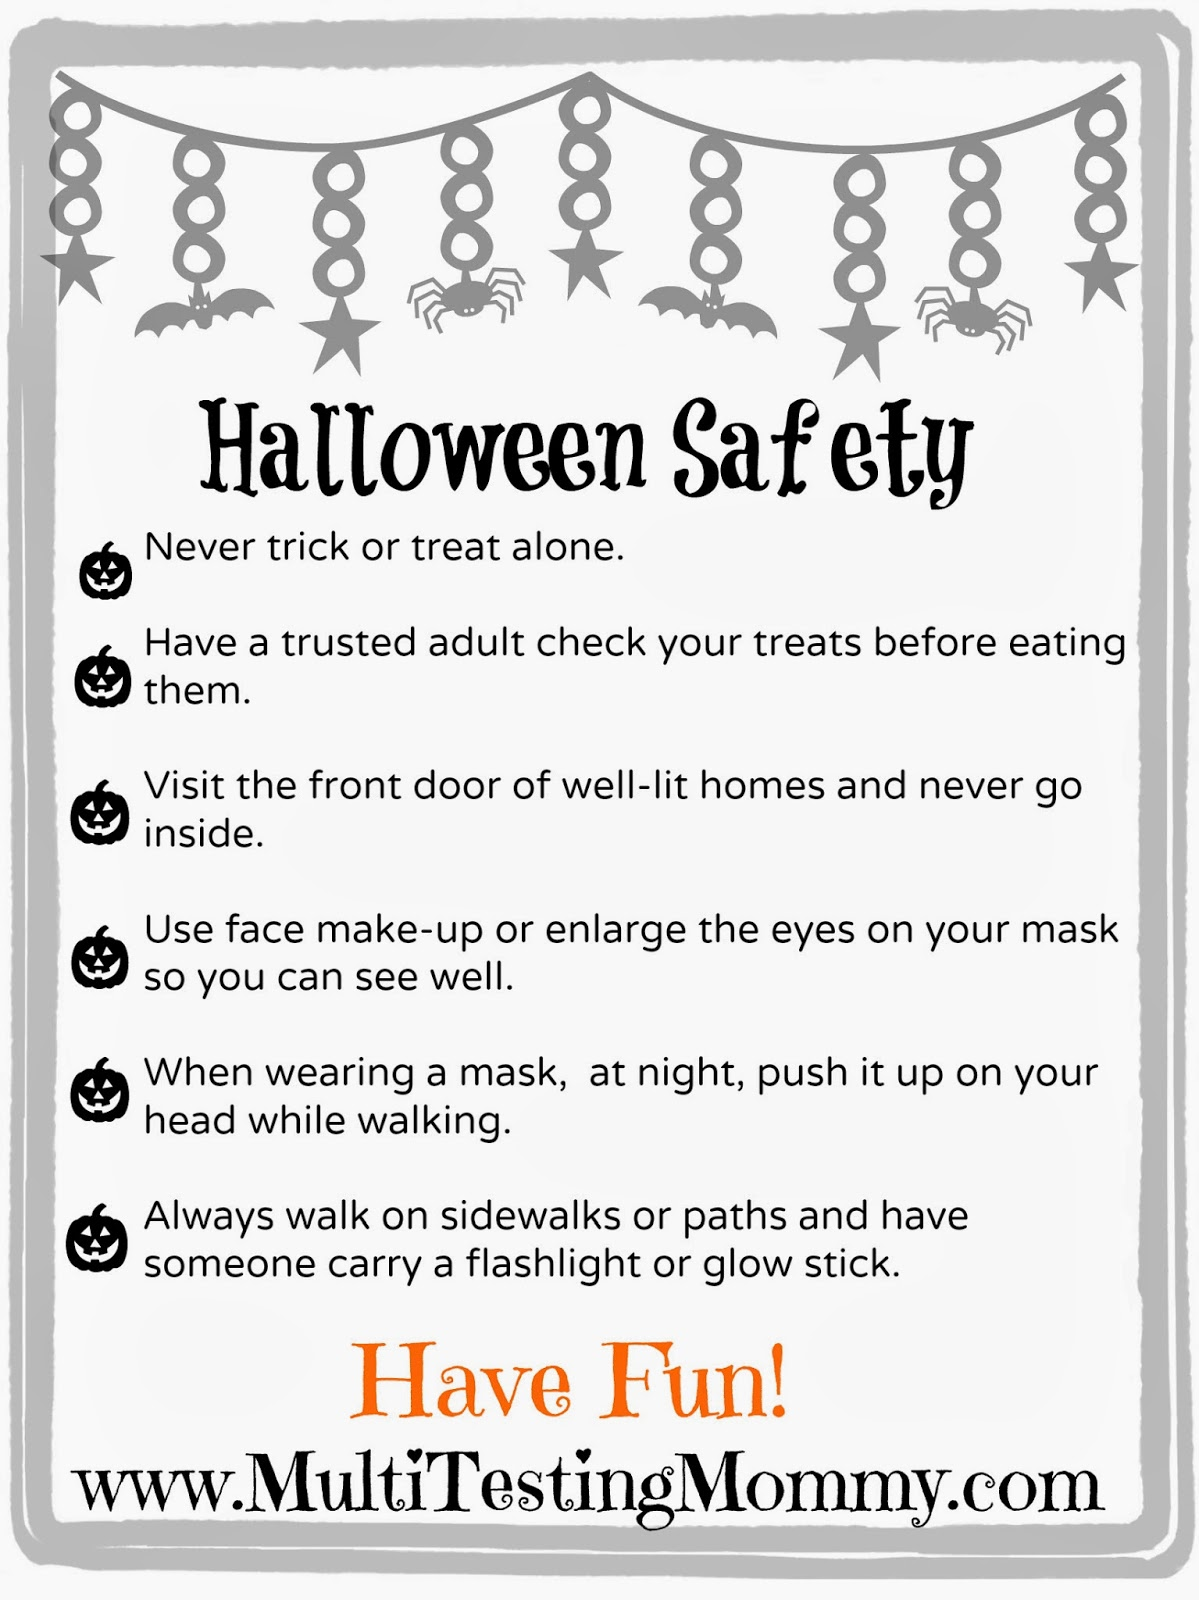 halloween safety tips for kids printable multi testing mommy - Halloween Safety Printables